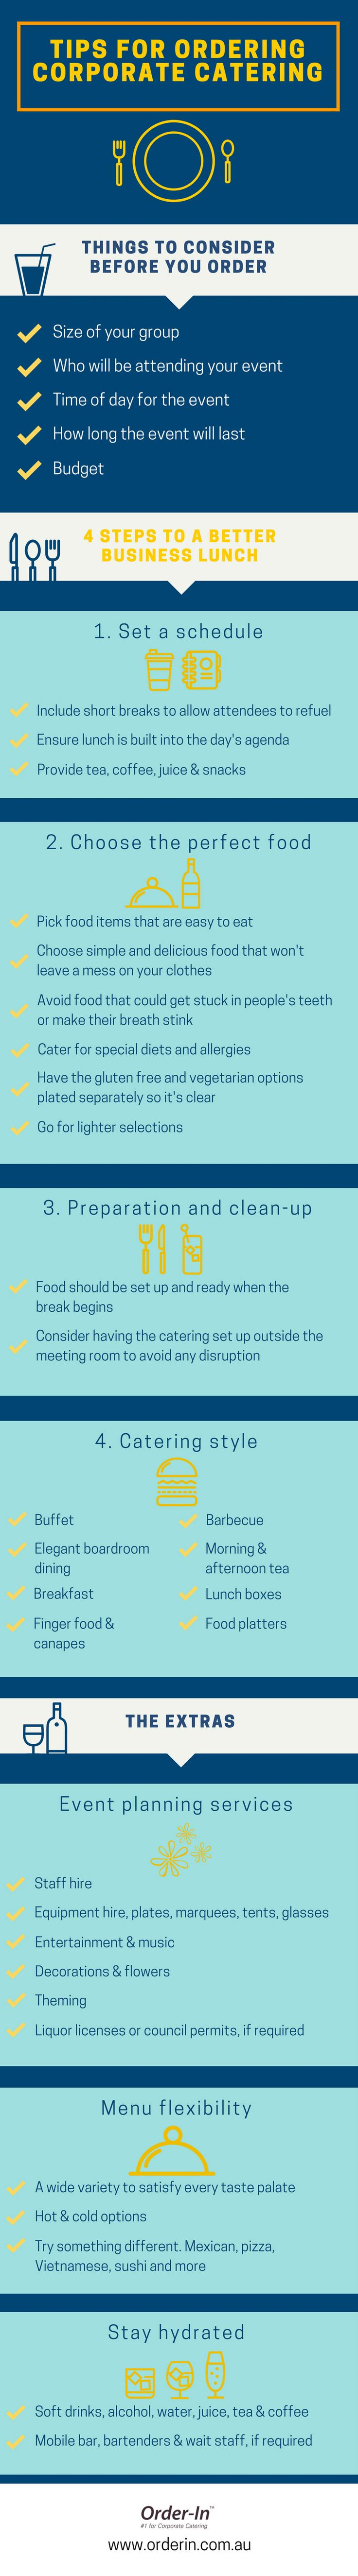 Corporate catering 101: tips for ordering office catering